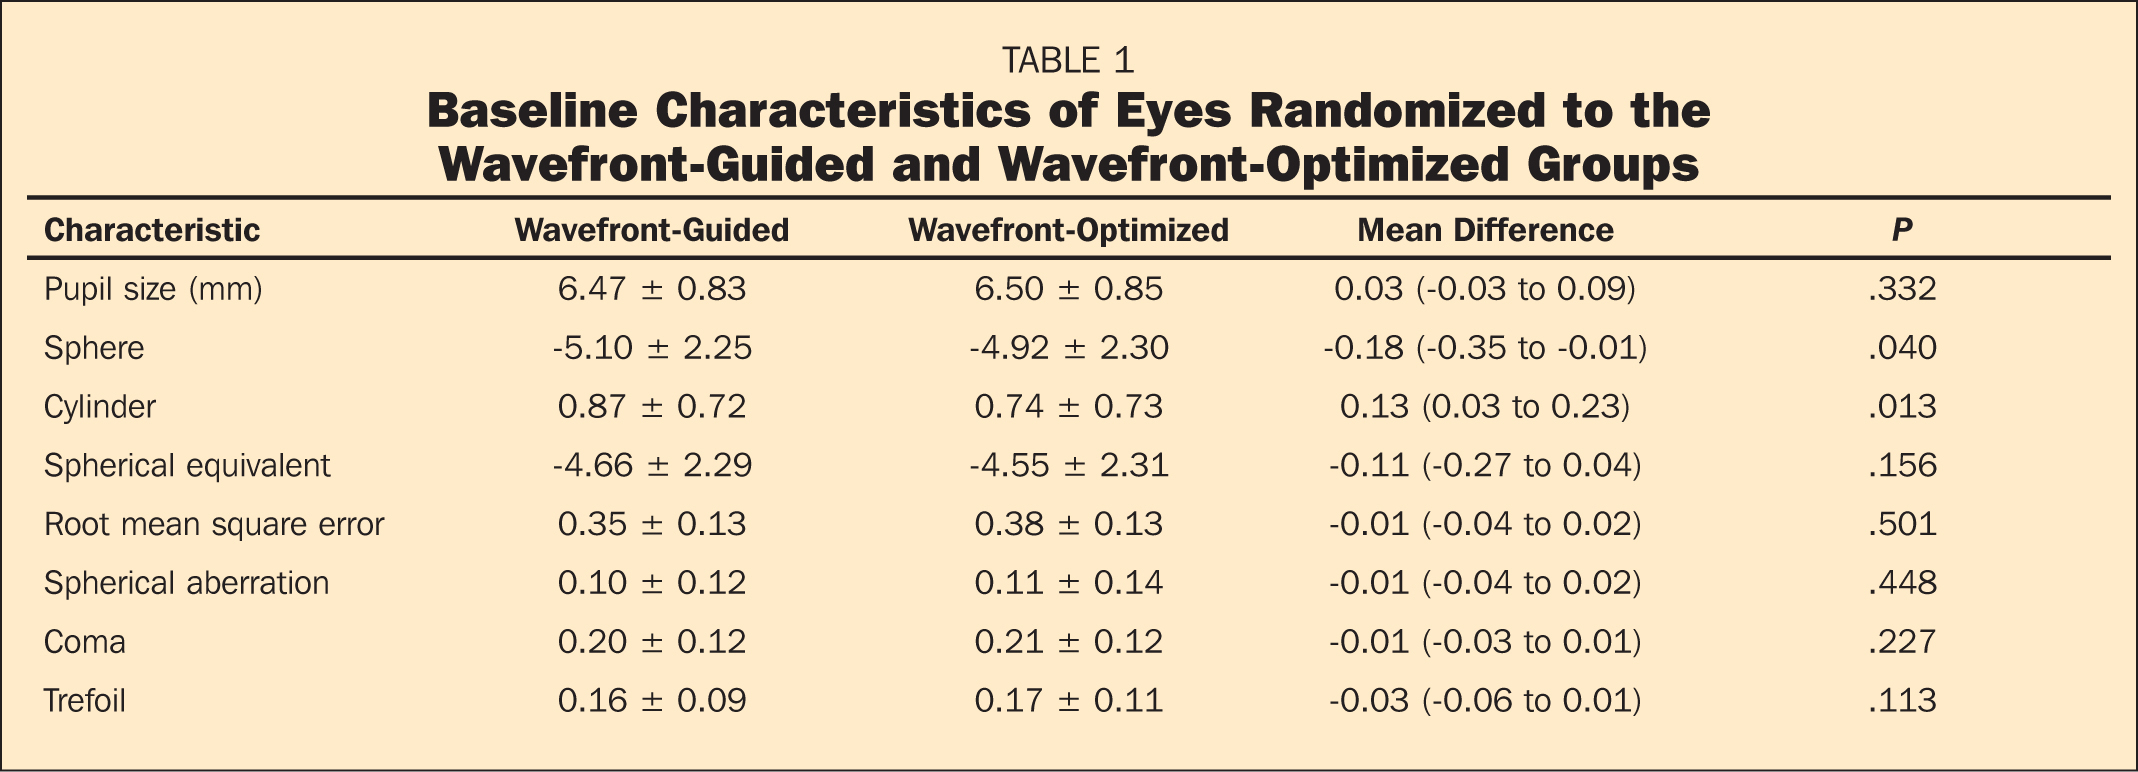 Baseline Characteristics of Eyes Randomized to the Wavefront-Guided and Wavefront-Optimized Groups